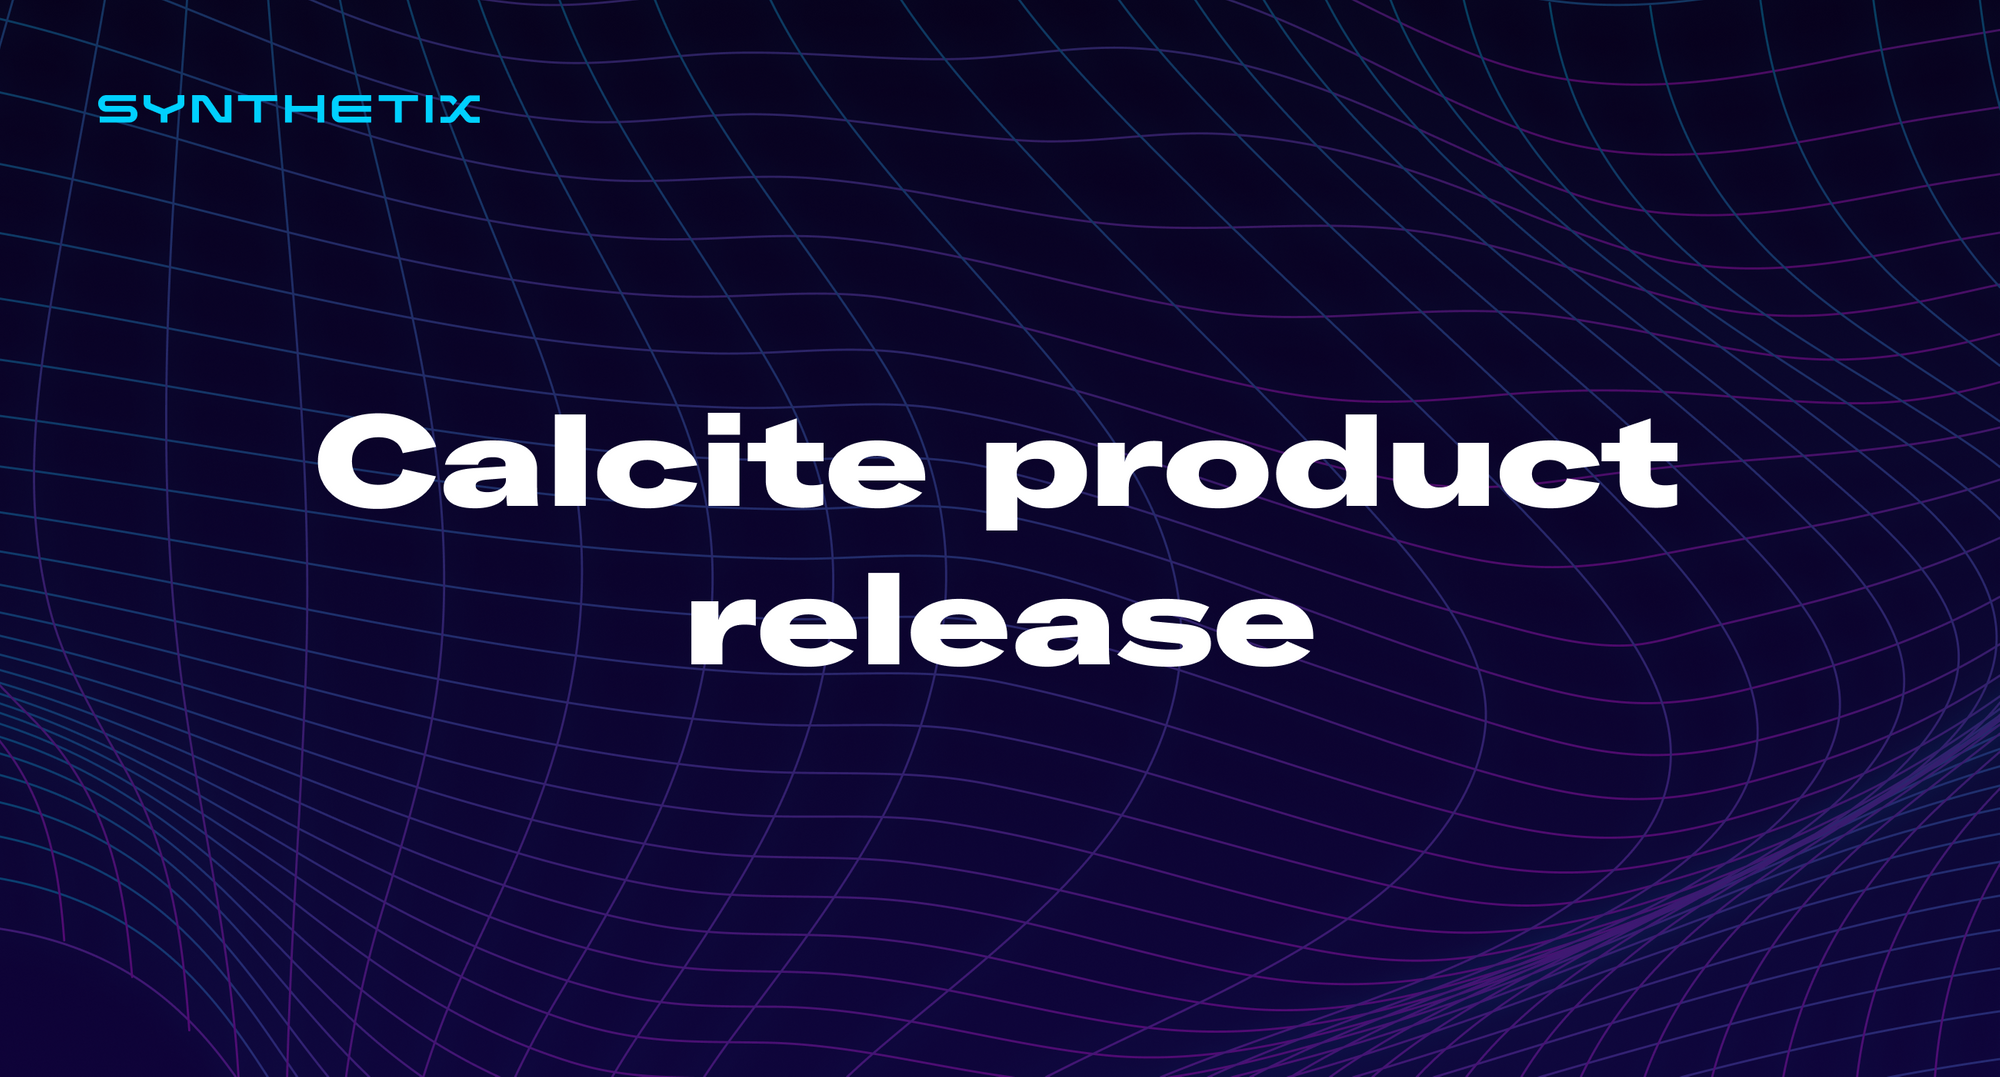 Calcite product release